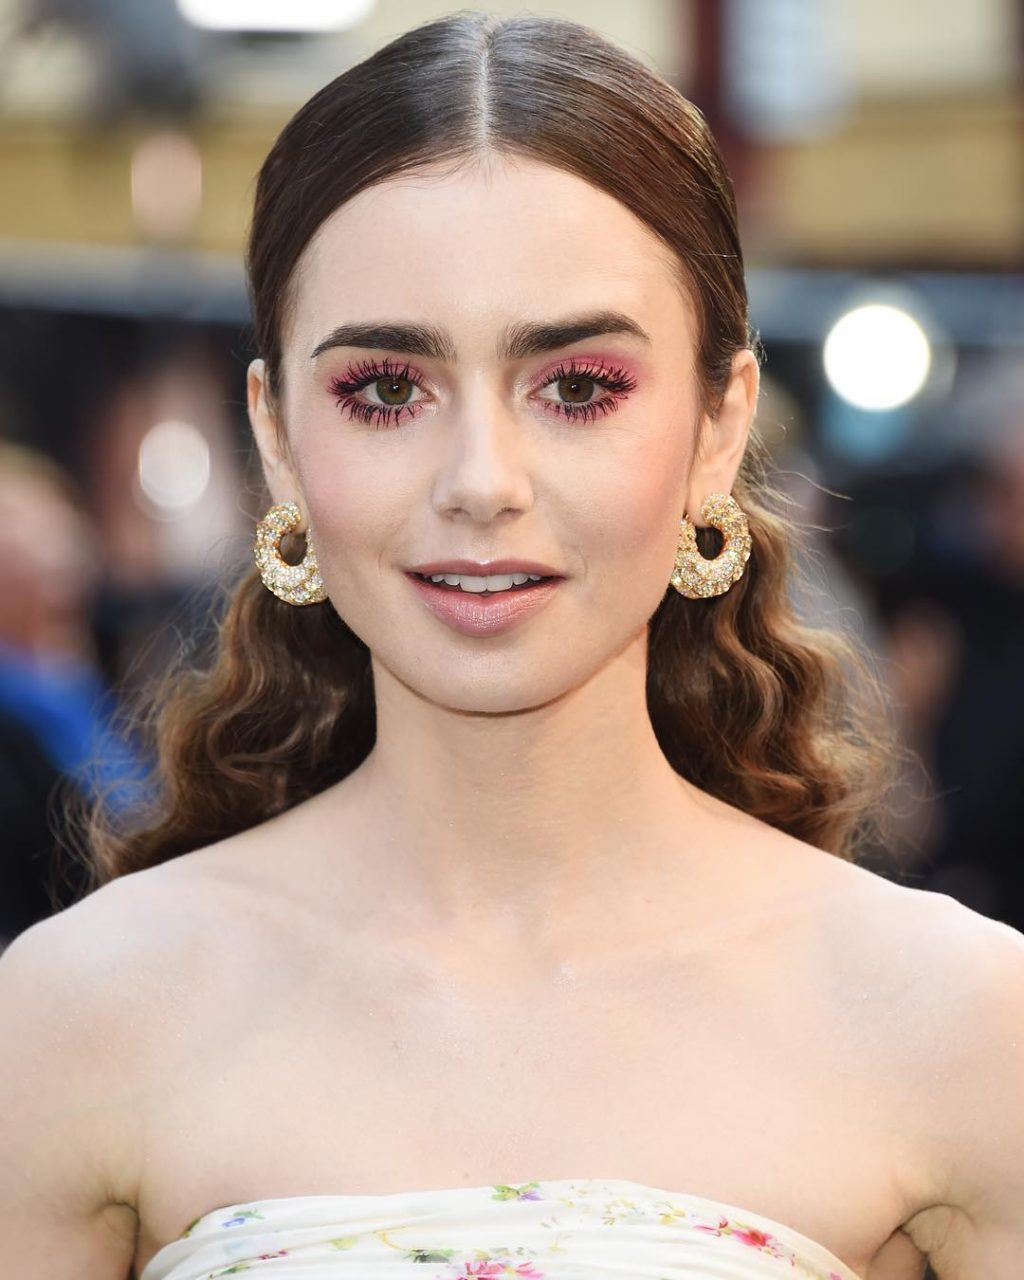 The Best Celebrity Beauty Looks of the Week of May 2, 2019 – Vote Now